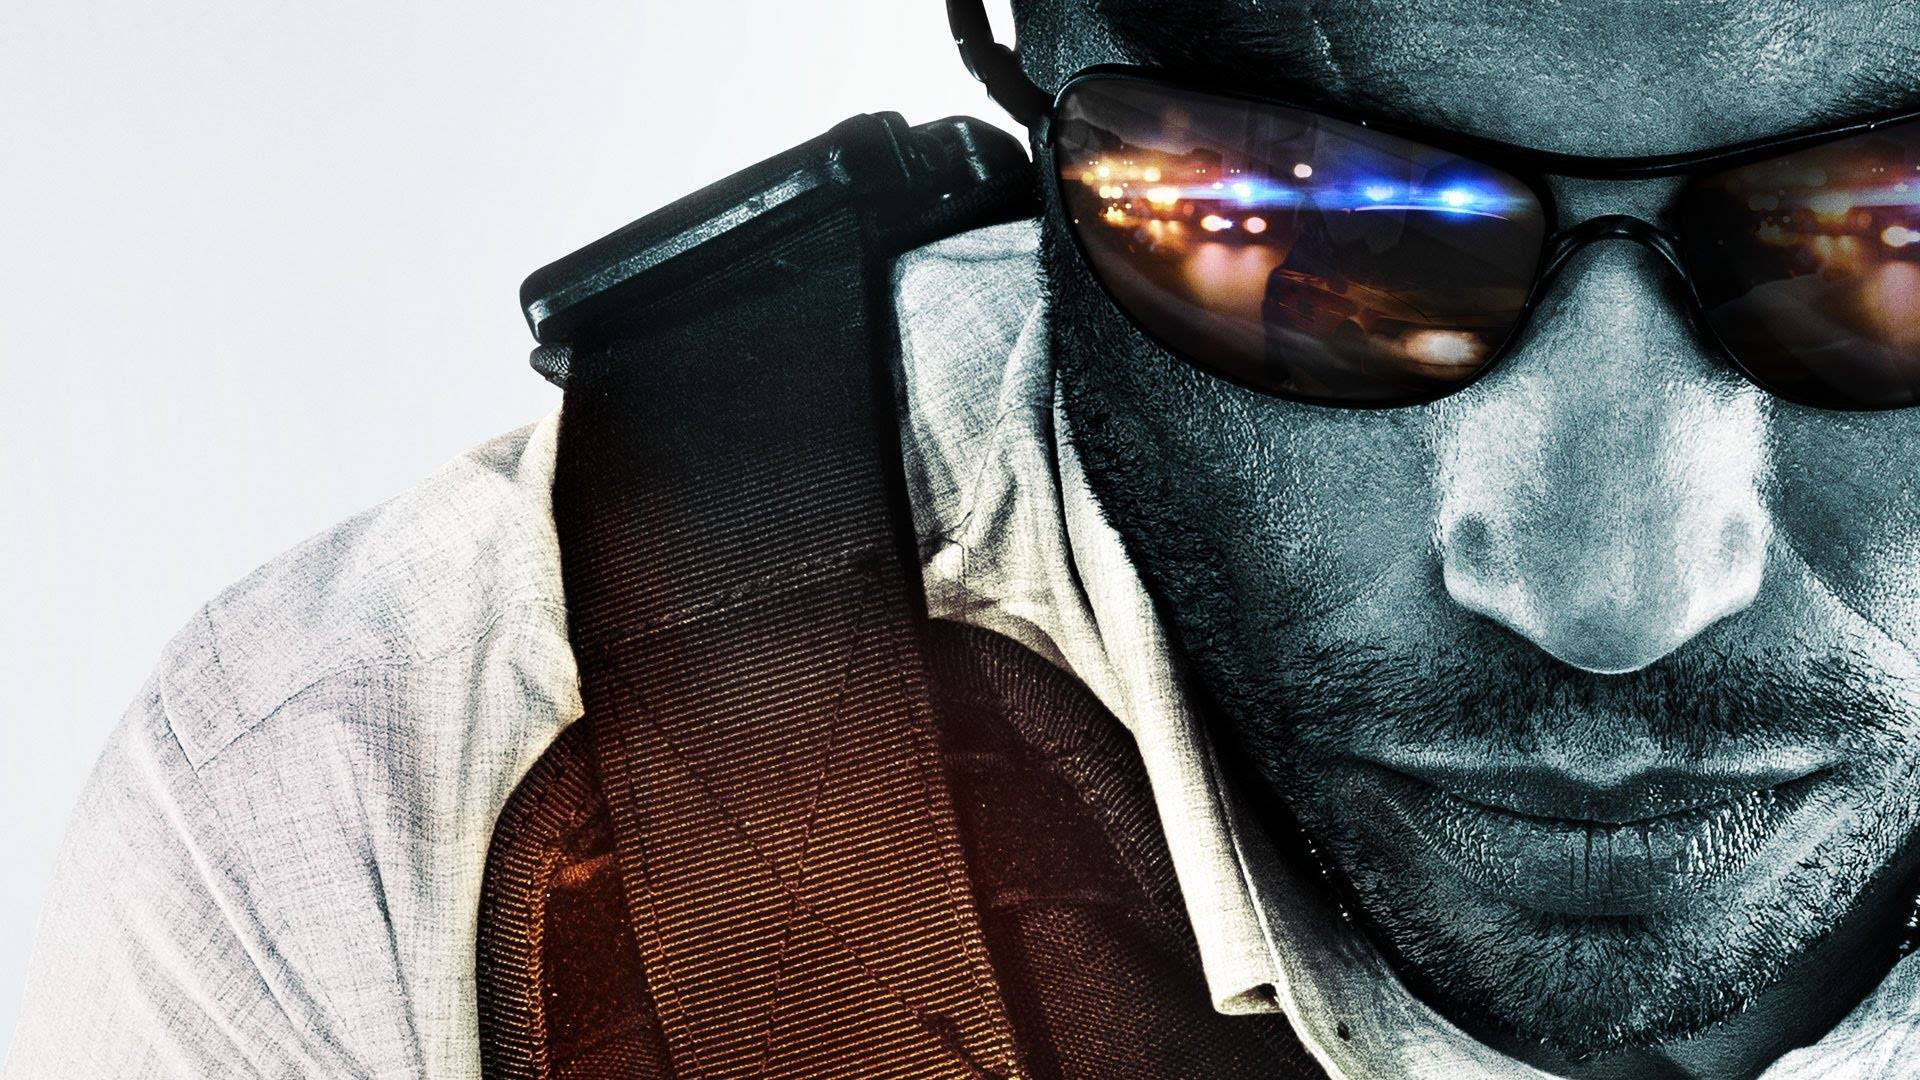 HD Wallpapers Battlefield Hardline